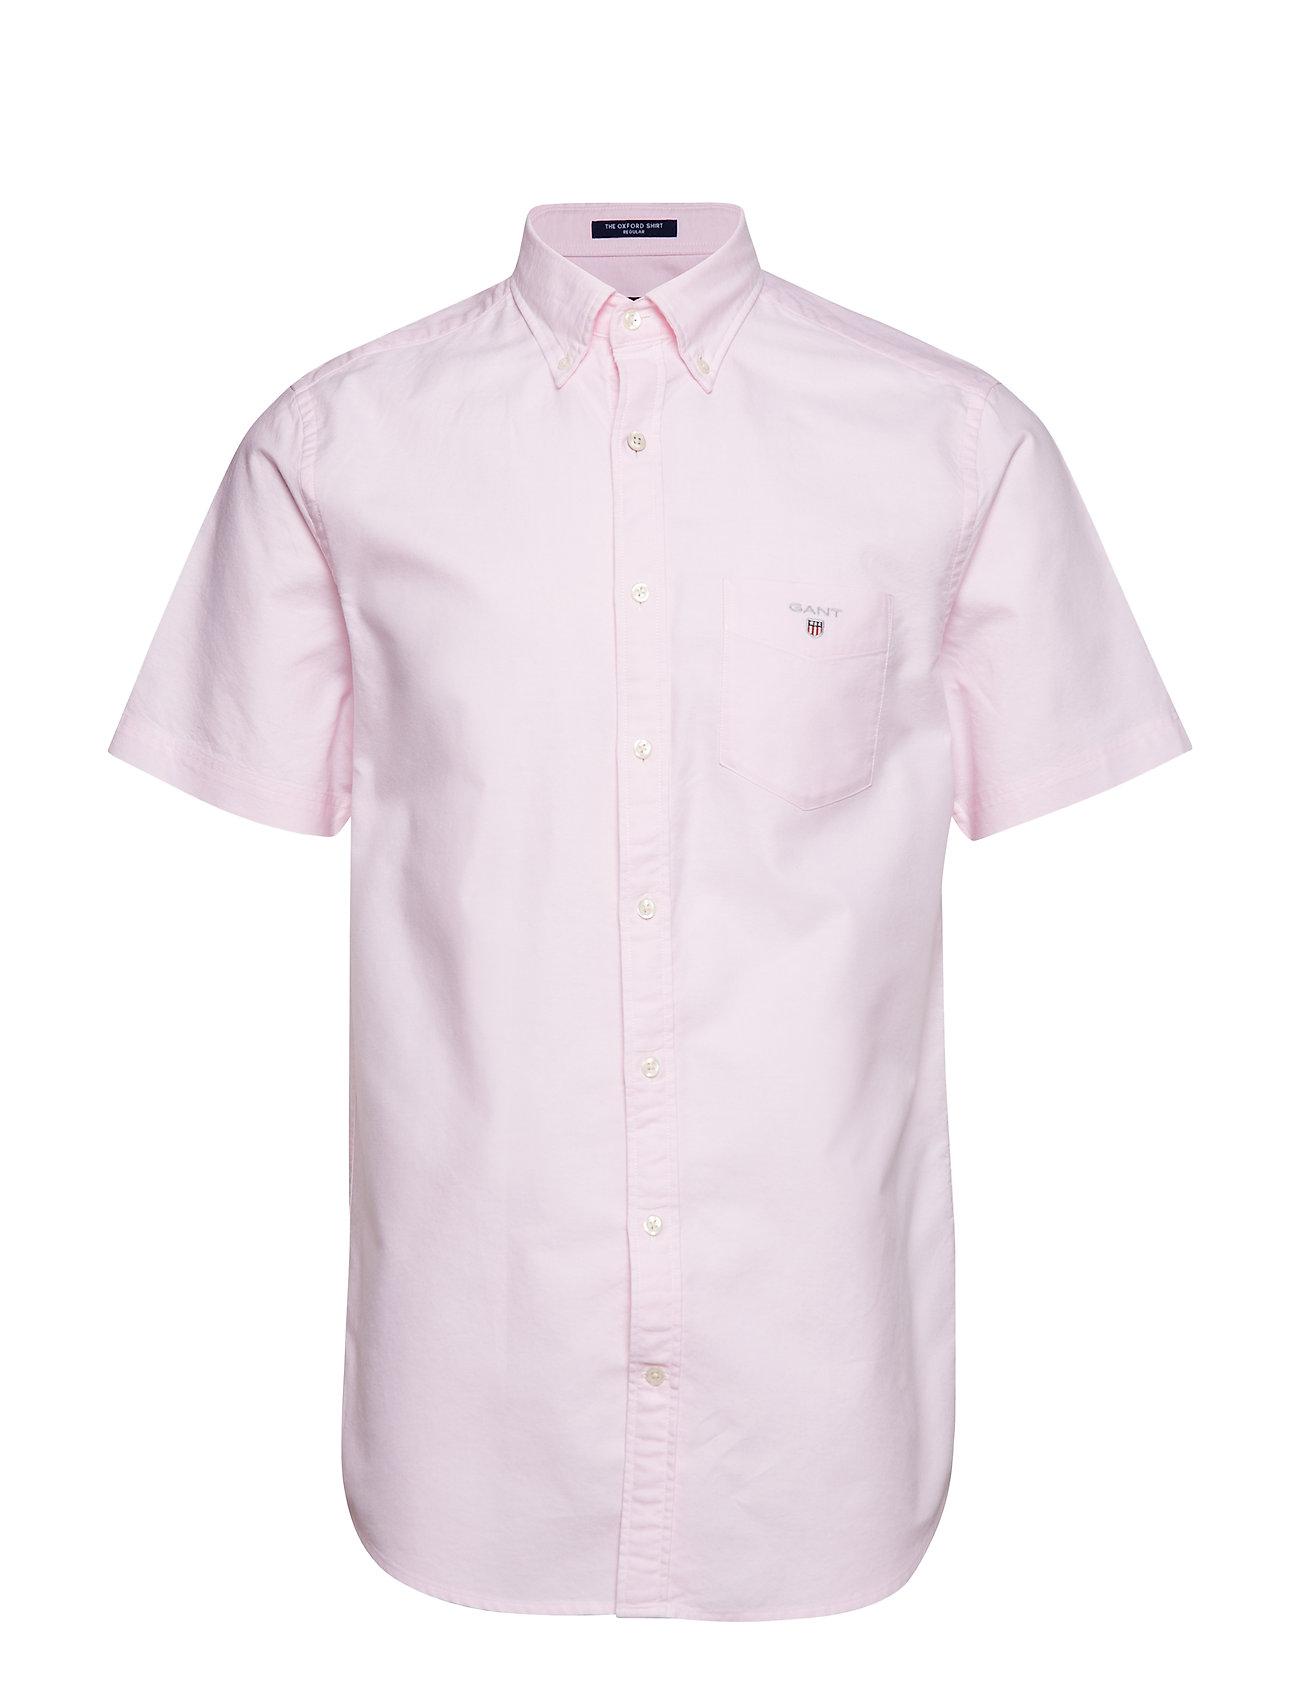 GANT THE OXFORD SHIRT REG SS BD - LIGHT PINK